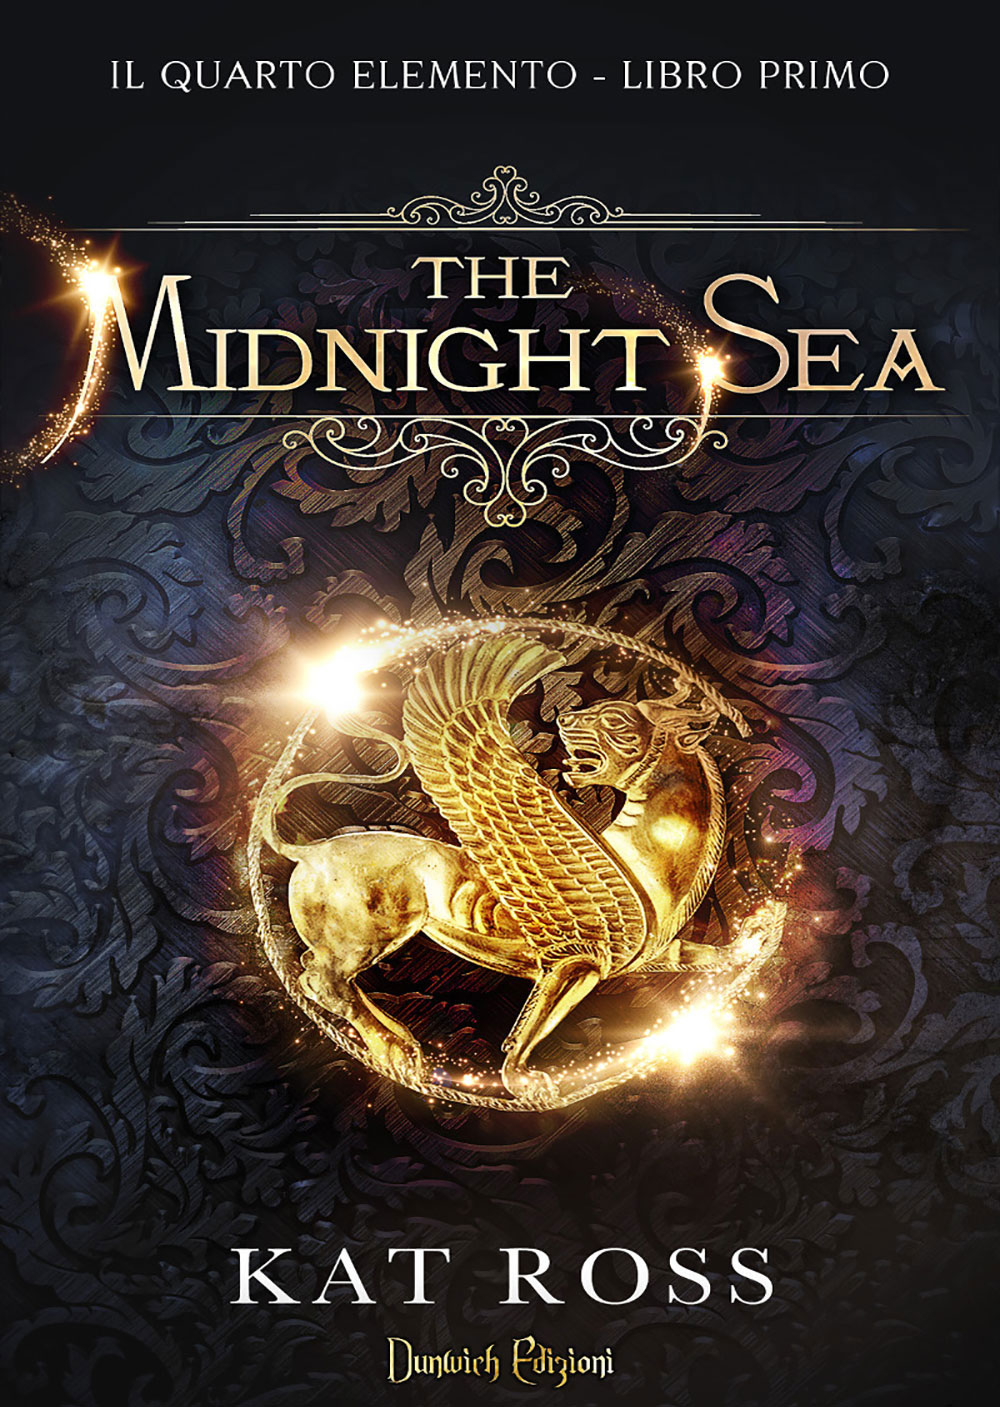 Recensioni 2017: The Midnight sea